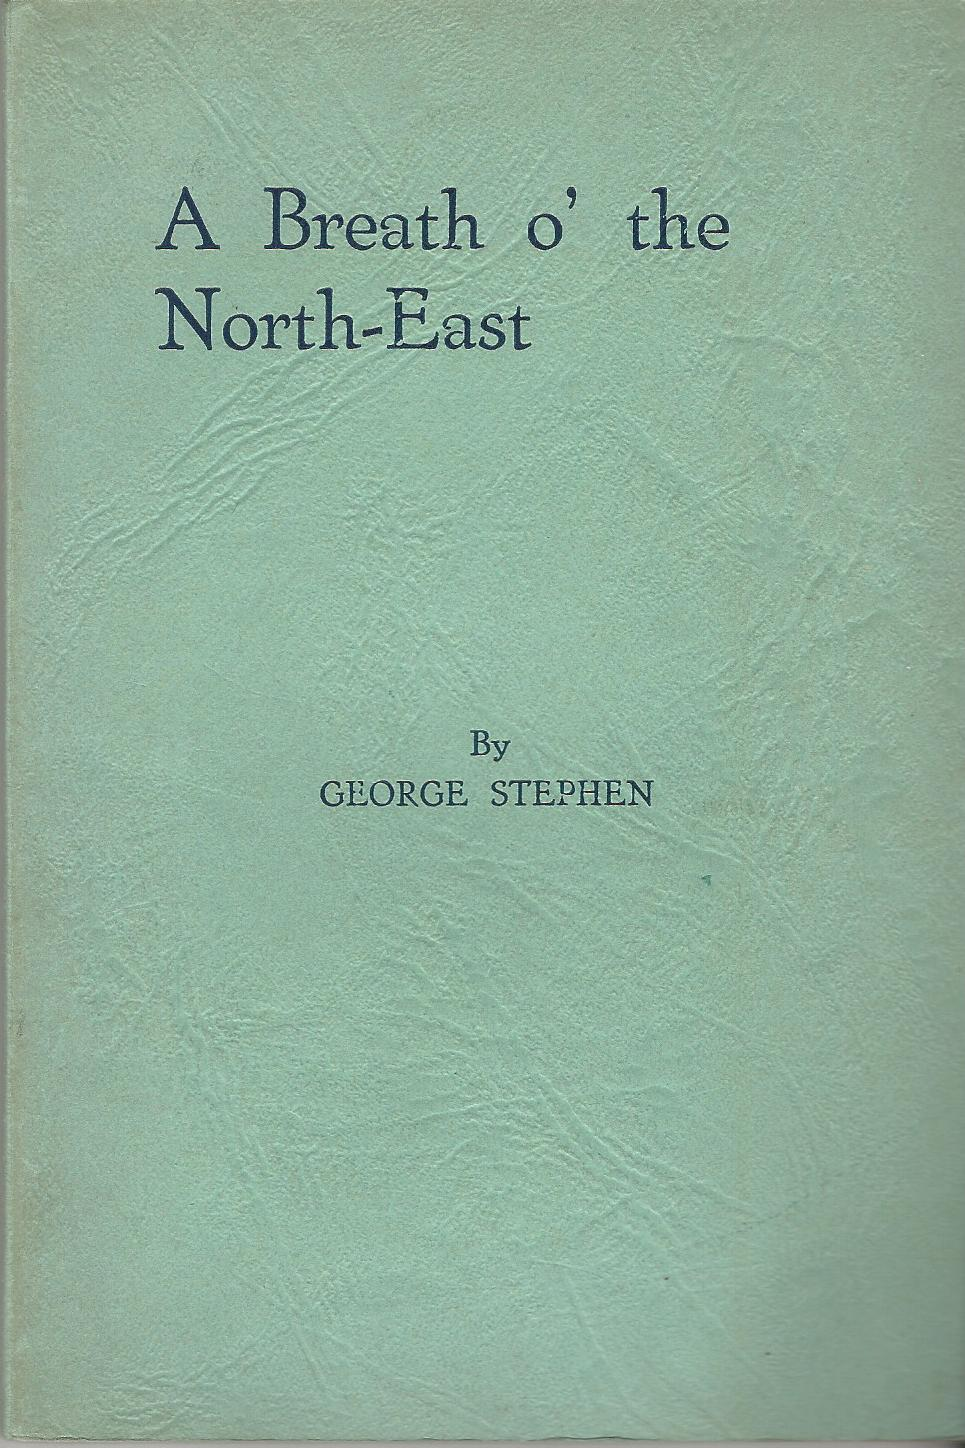 Image for A Breath o' the North-East